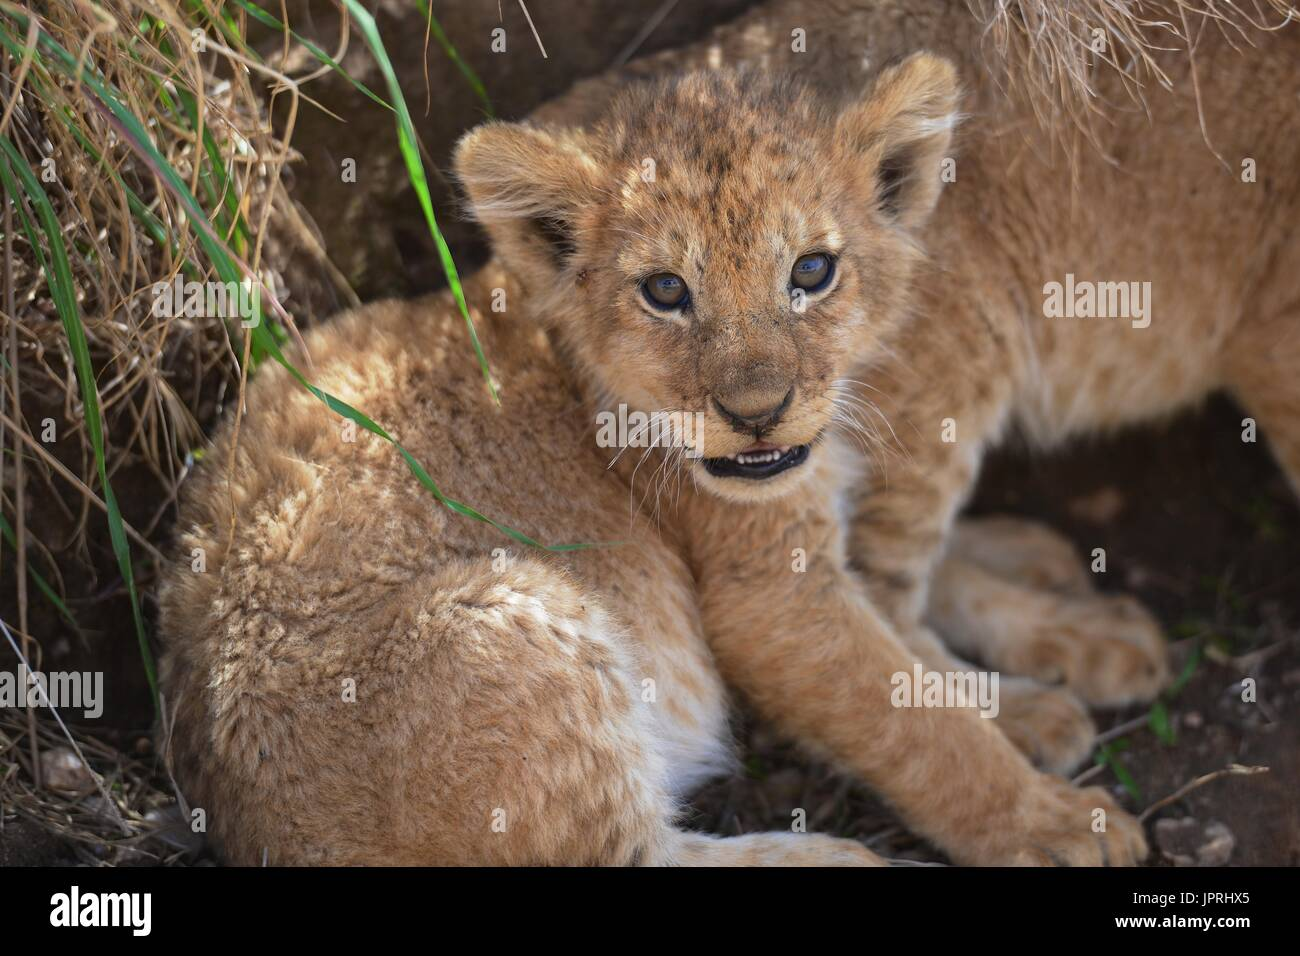 Lion cubs in the Serengeti National Park - Stock Image